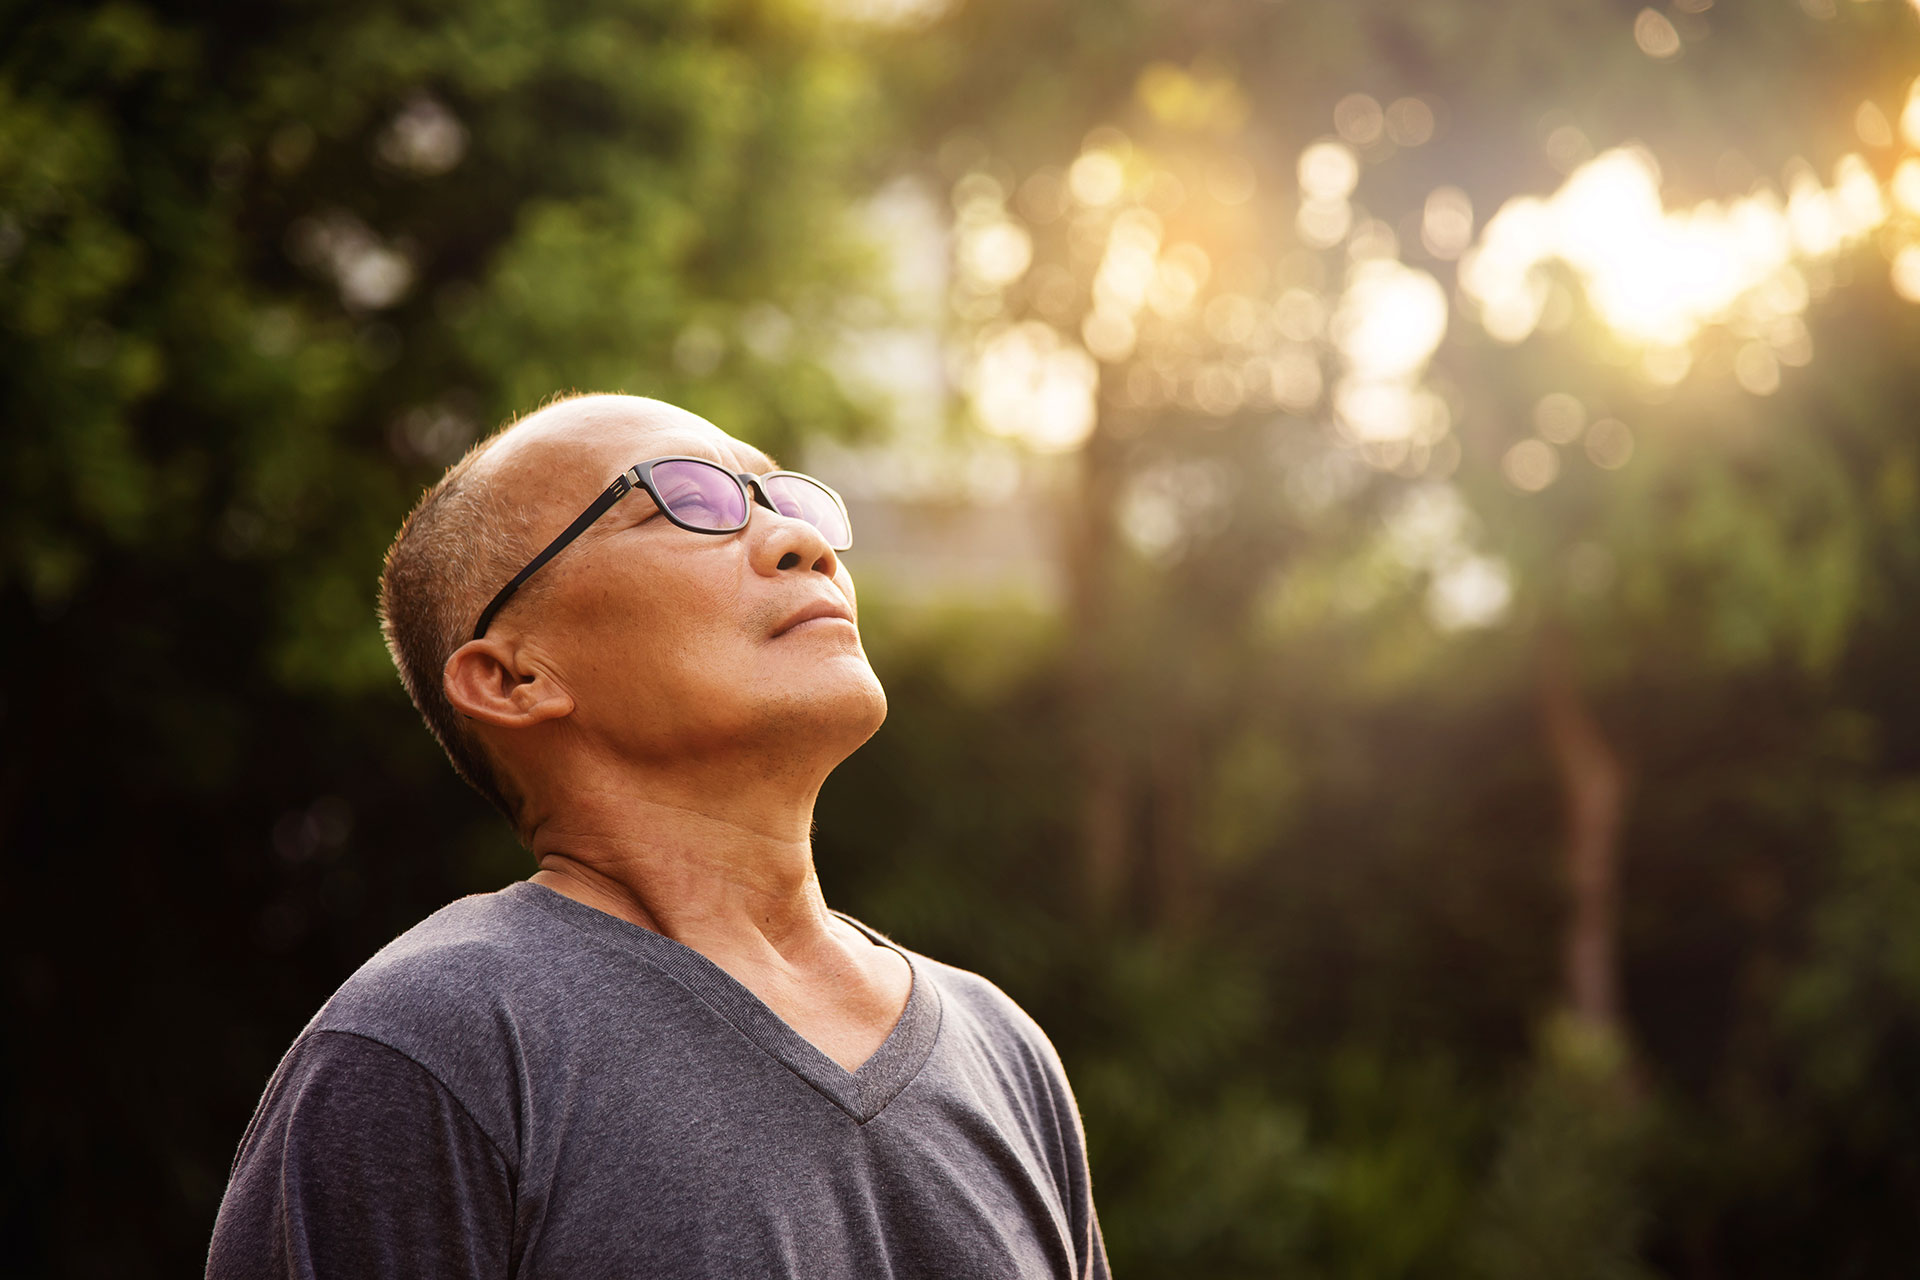 Man taking a deep breath of fresh air with his eyes closed and head tilted back, basking in the golden morning light.